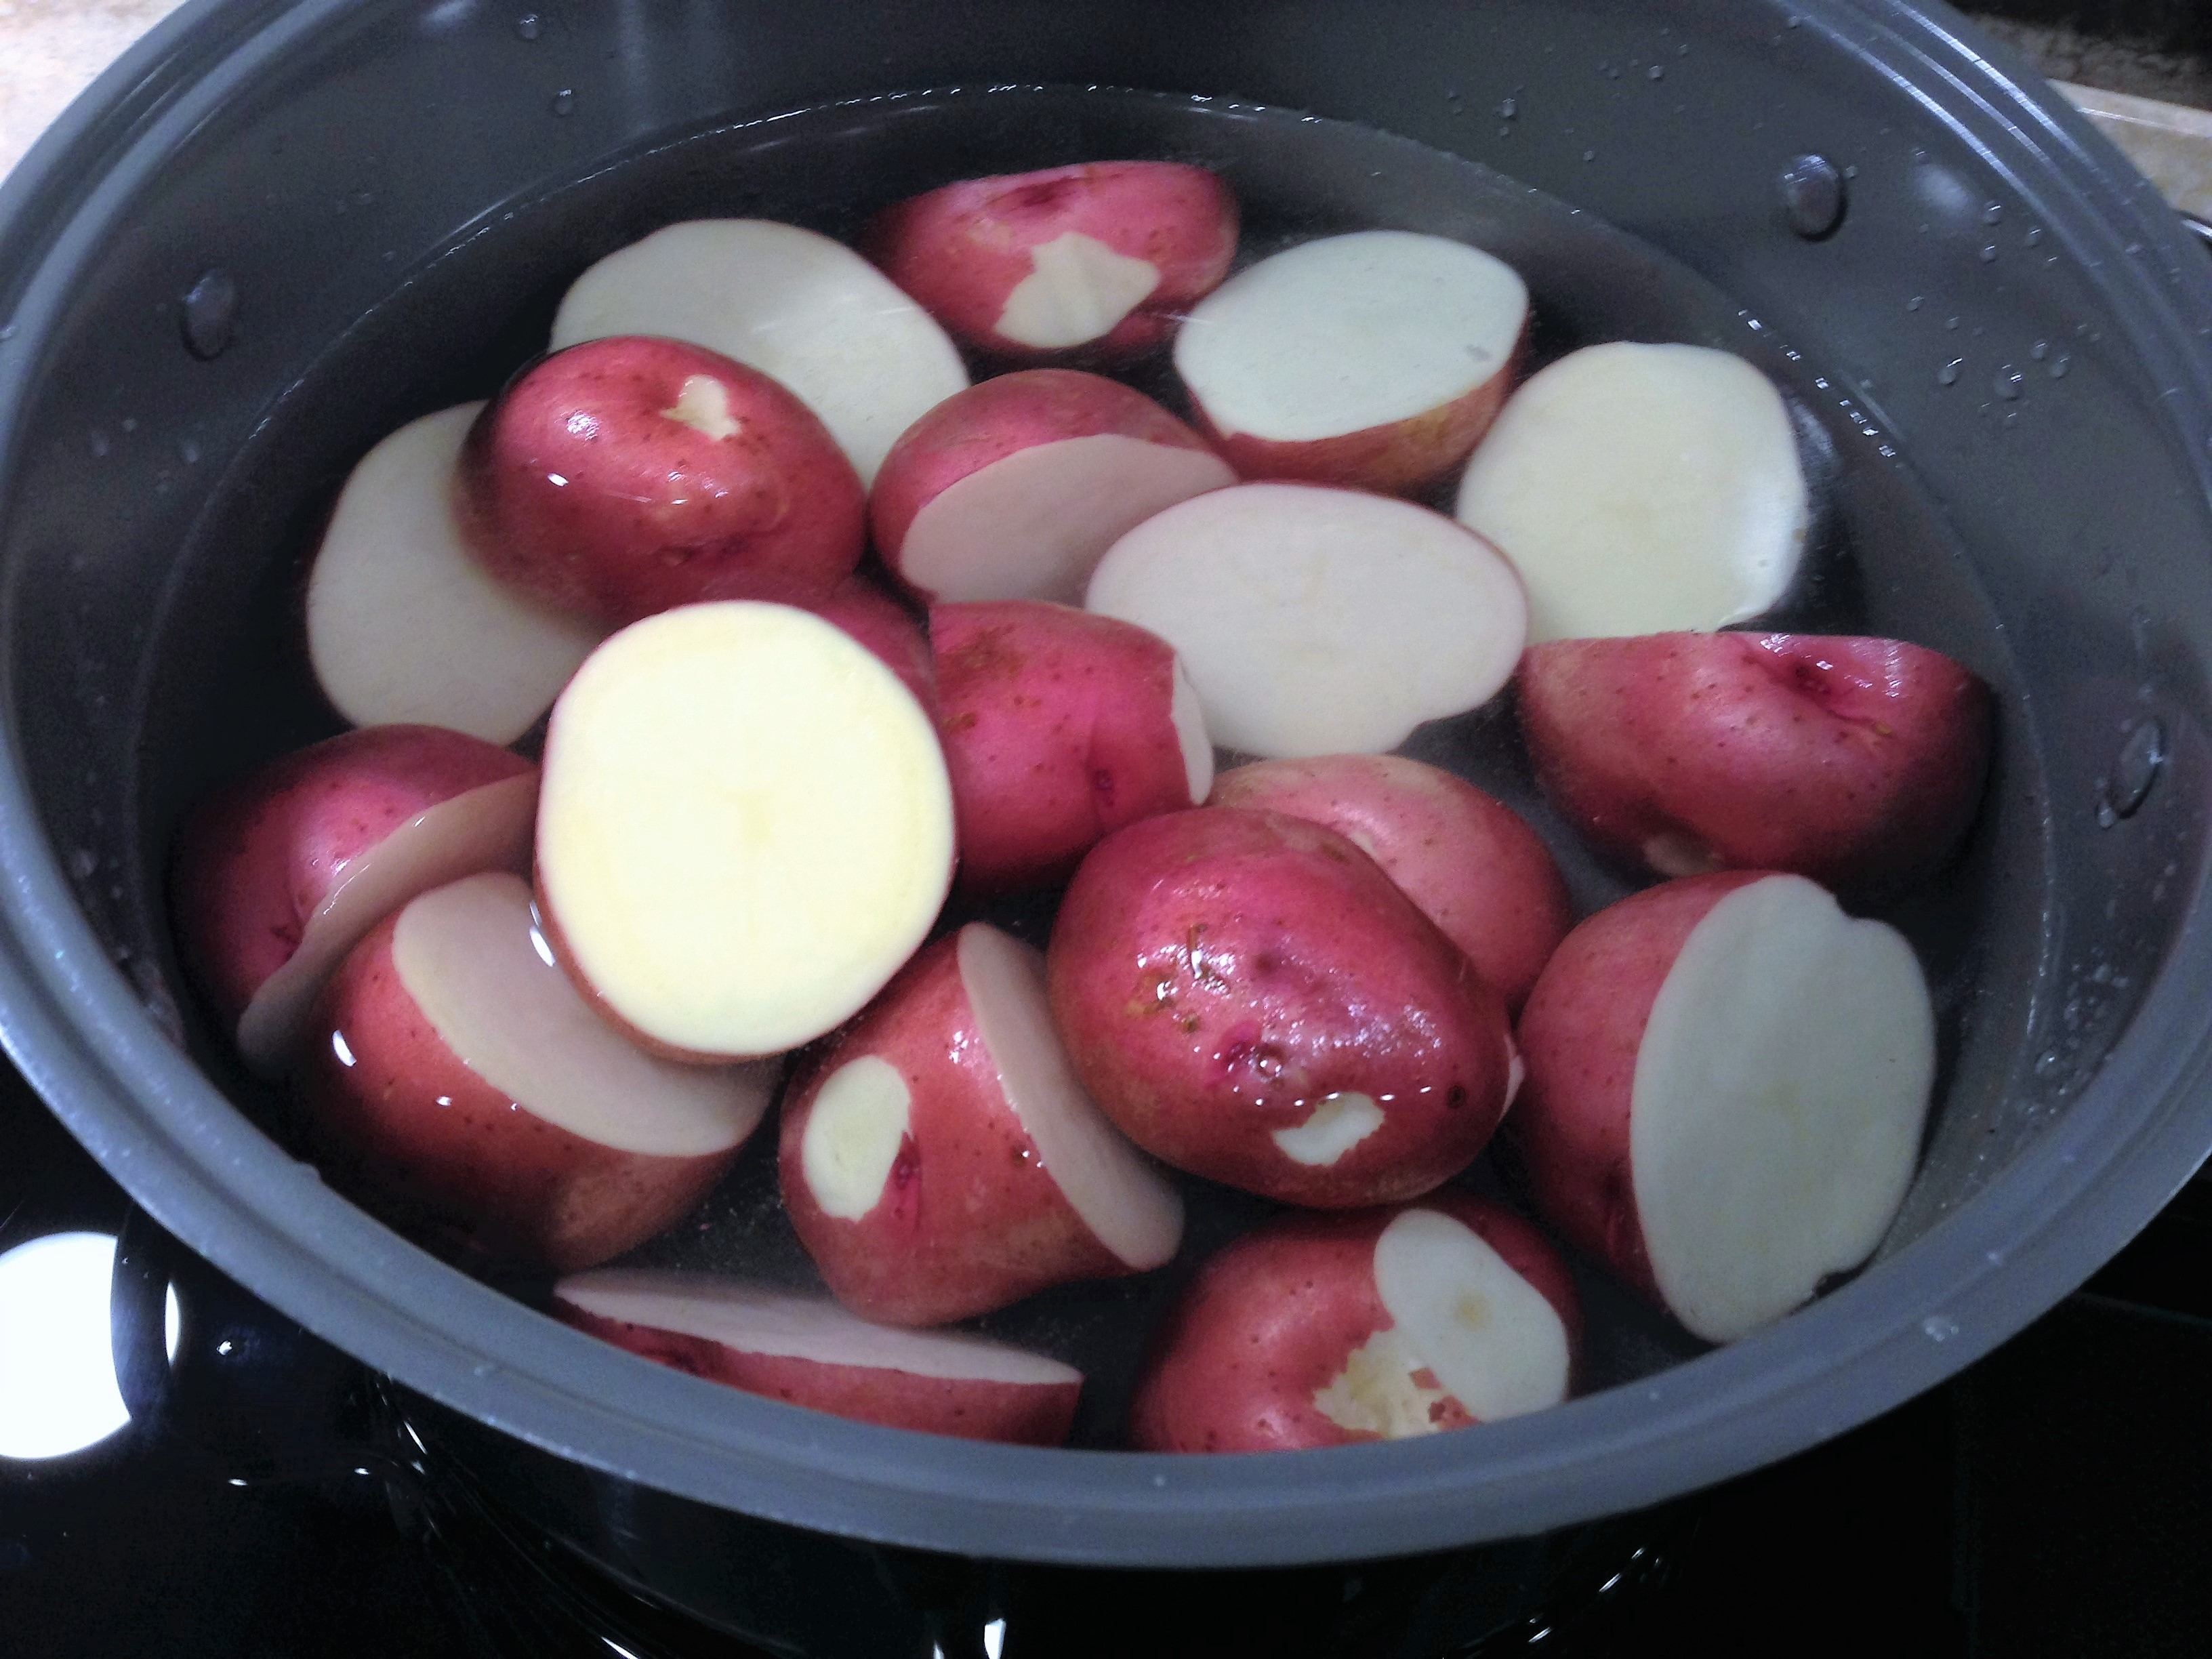 Potatoes in pot